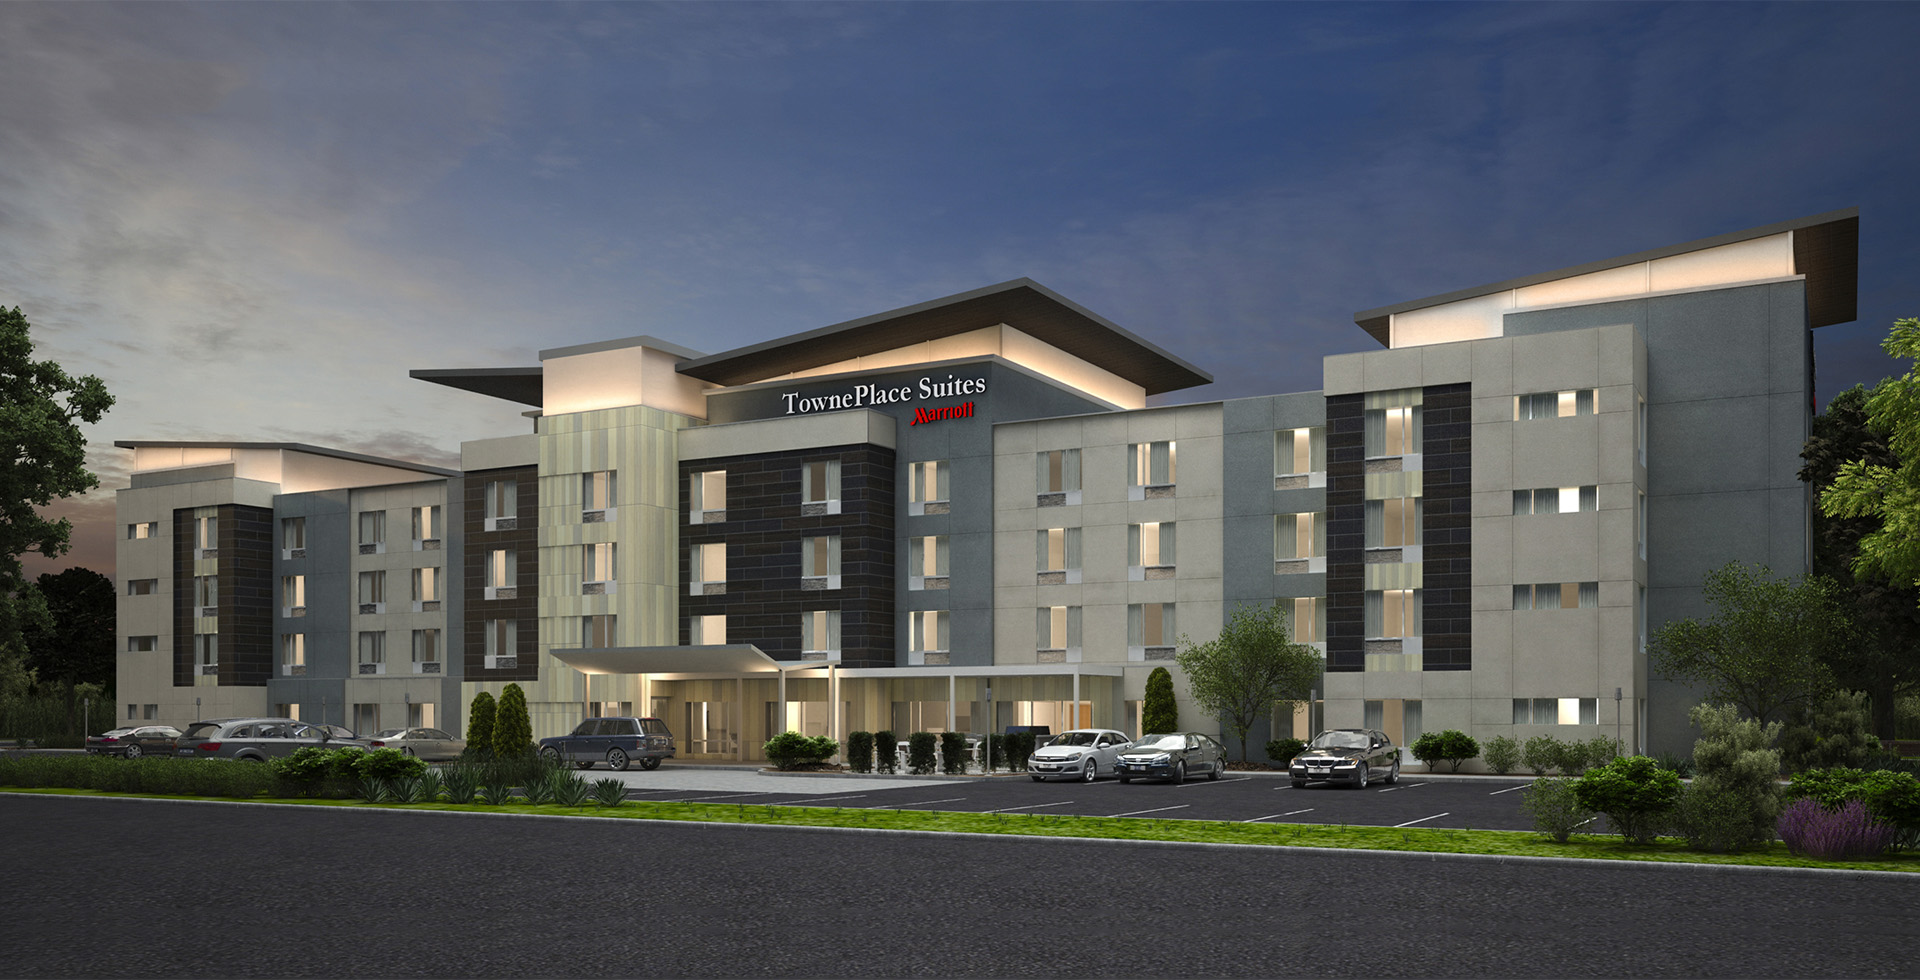 New Towneplace Suites Breaks Ground In South Carolina